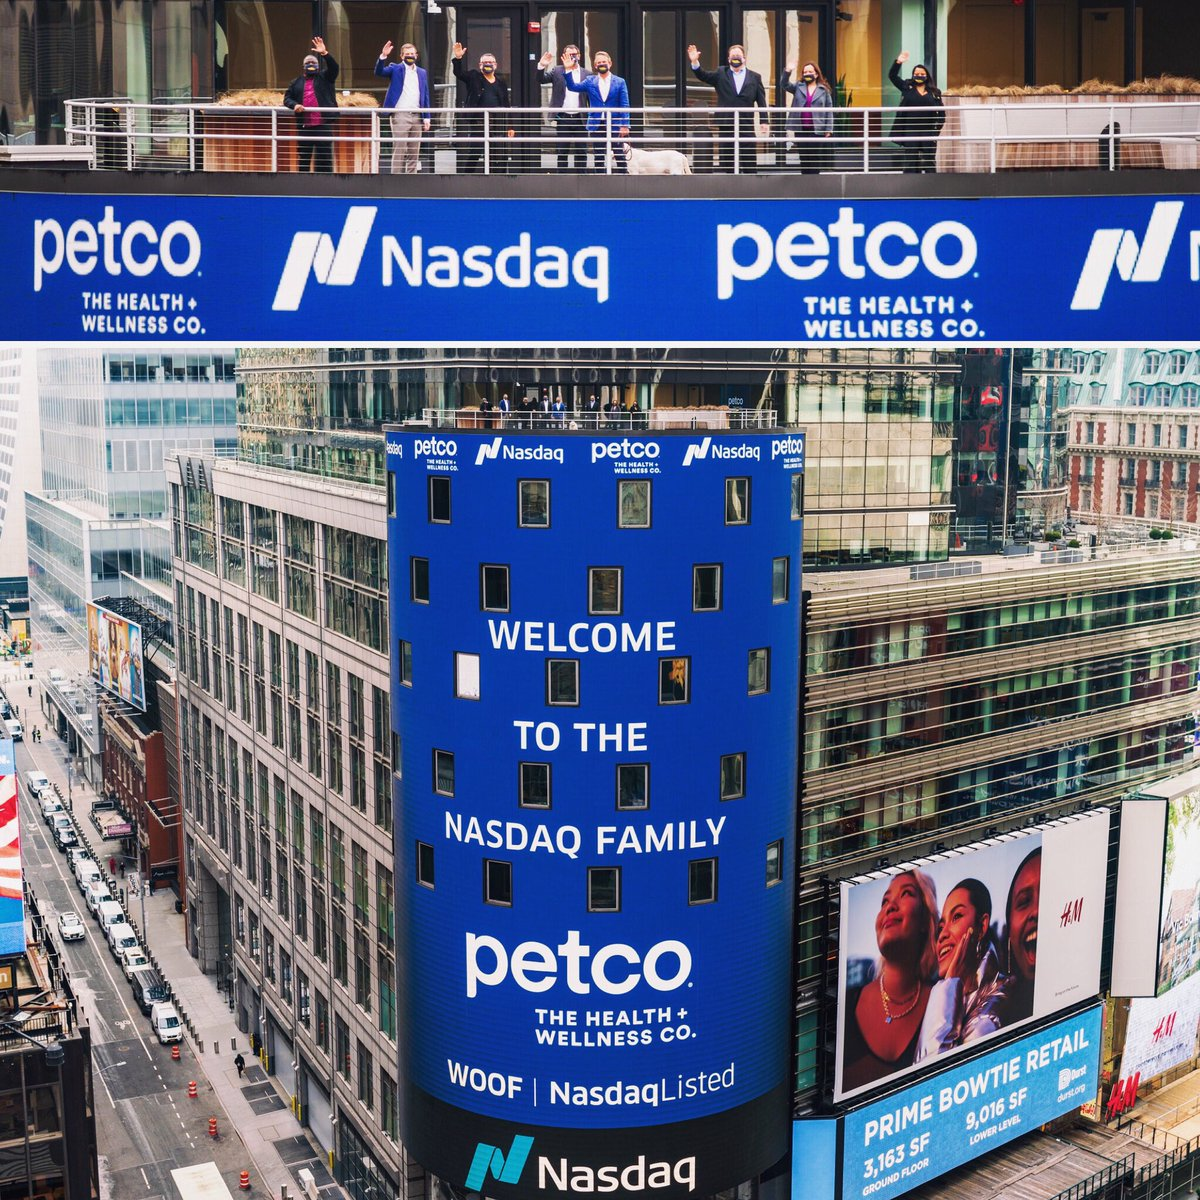 Congratulations to @Petco (WOOF) on the successful IPO!  We were honored to shoot it from atop Times Square.  #WeShootTheBiggestEvents   #sightandsound #petco #nasdaq #stockmarket #pet #woof #bealpha #timessquare #ipo #openingbell #topphotography